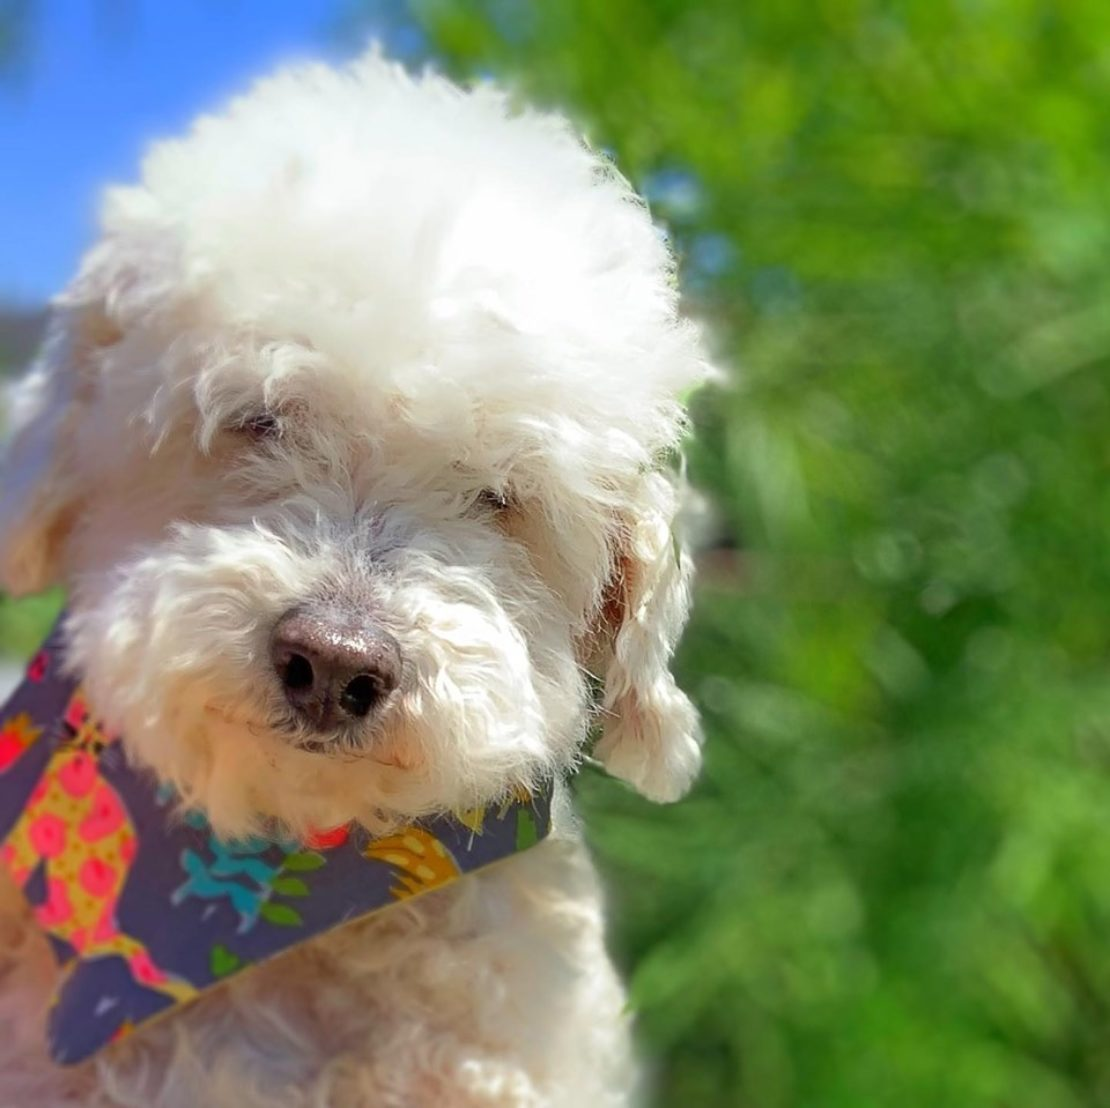 fluffy white Maltipoo sits by a large shrub. Her eyes are partially obscured by her fur. She wears a brightly colored bandana.